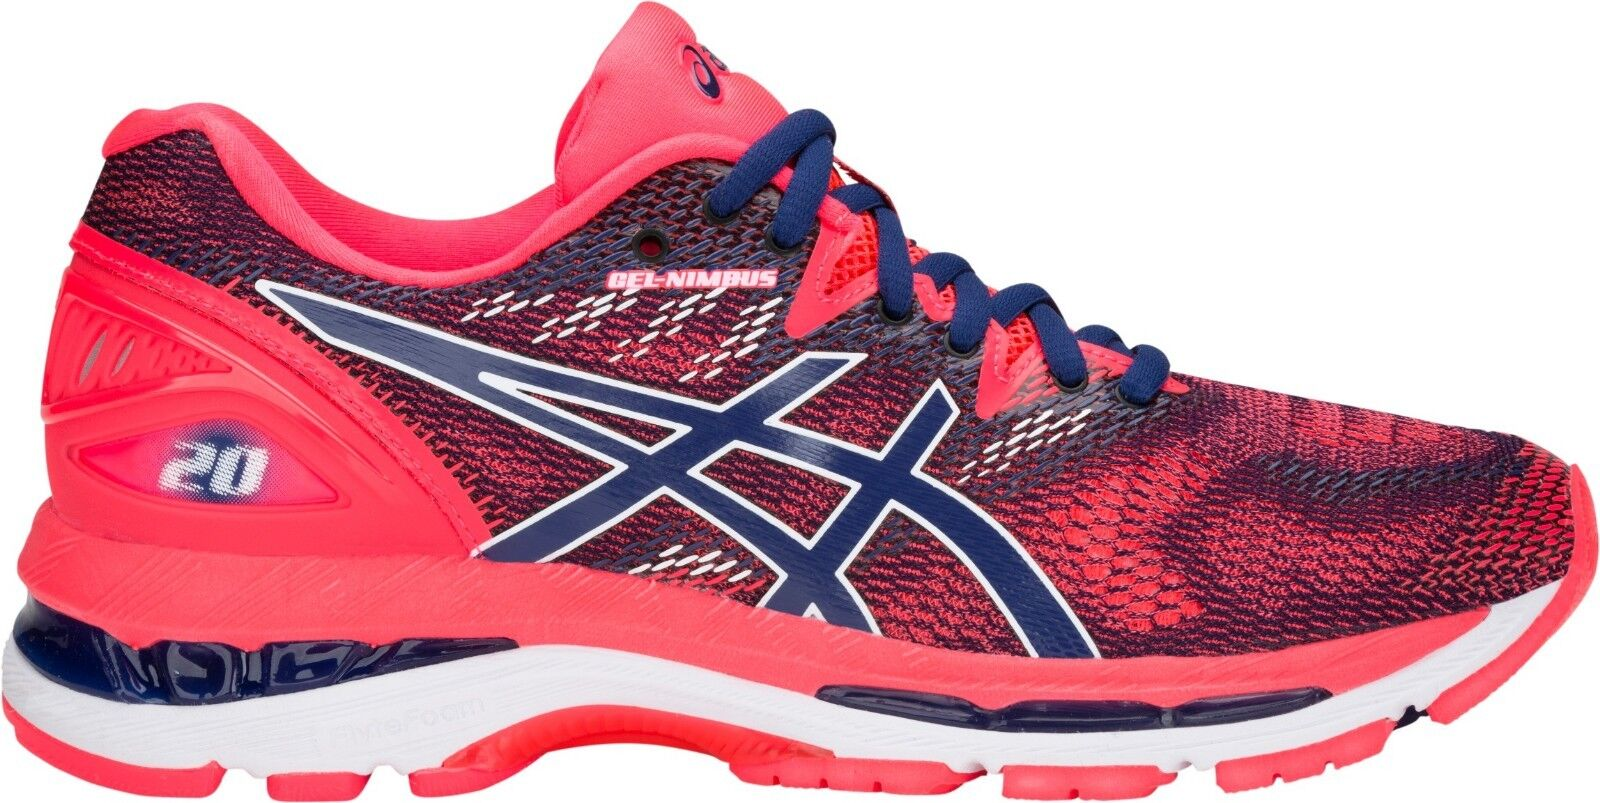 BARGAIN BARGAIN BARGAIN    Asics Gel Nimbus 20 Womens Running shoes (B) (400) 5834ff